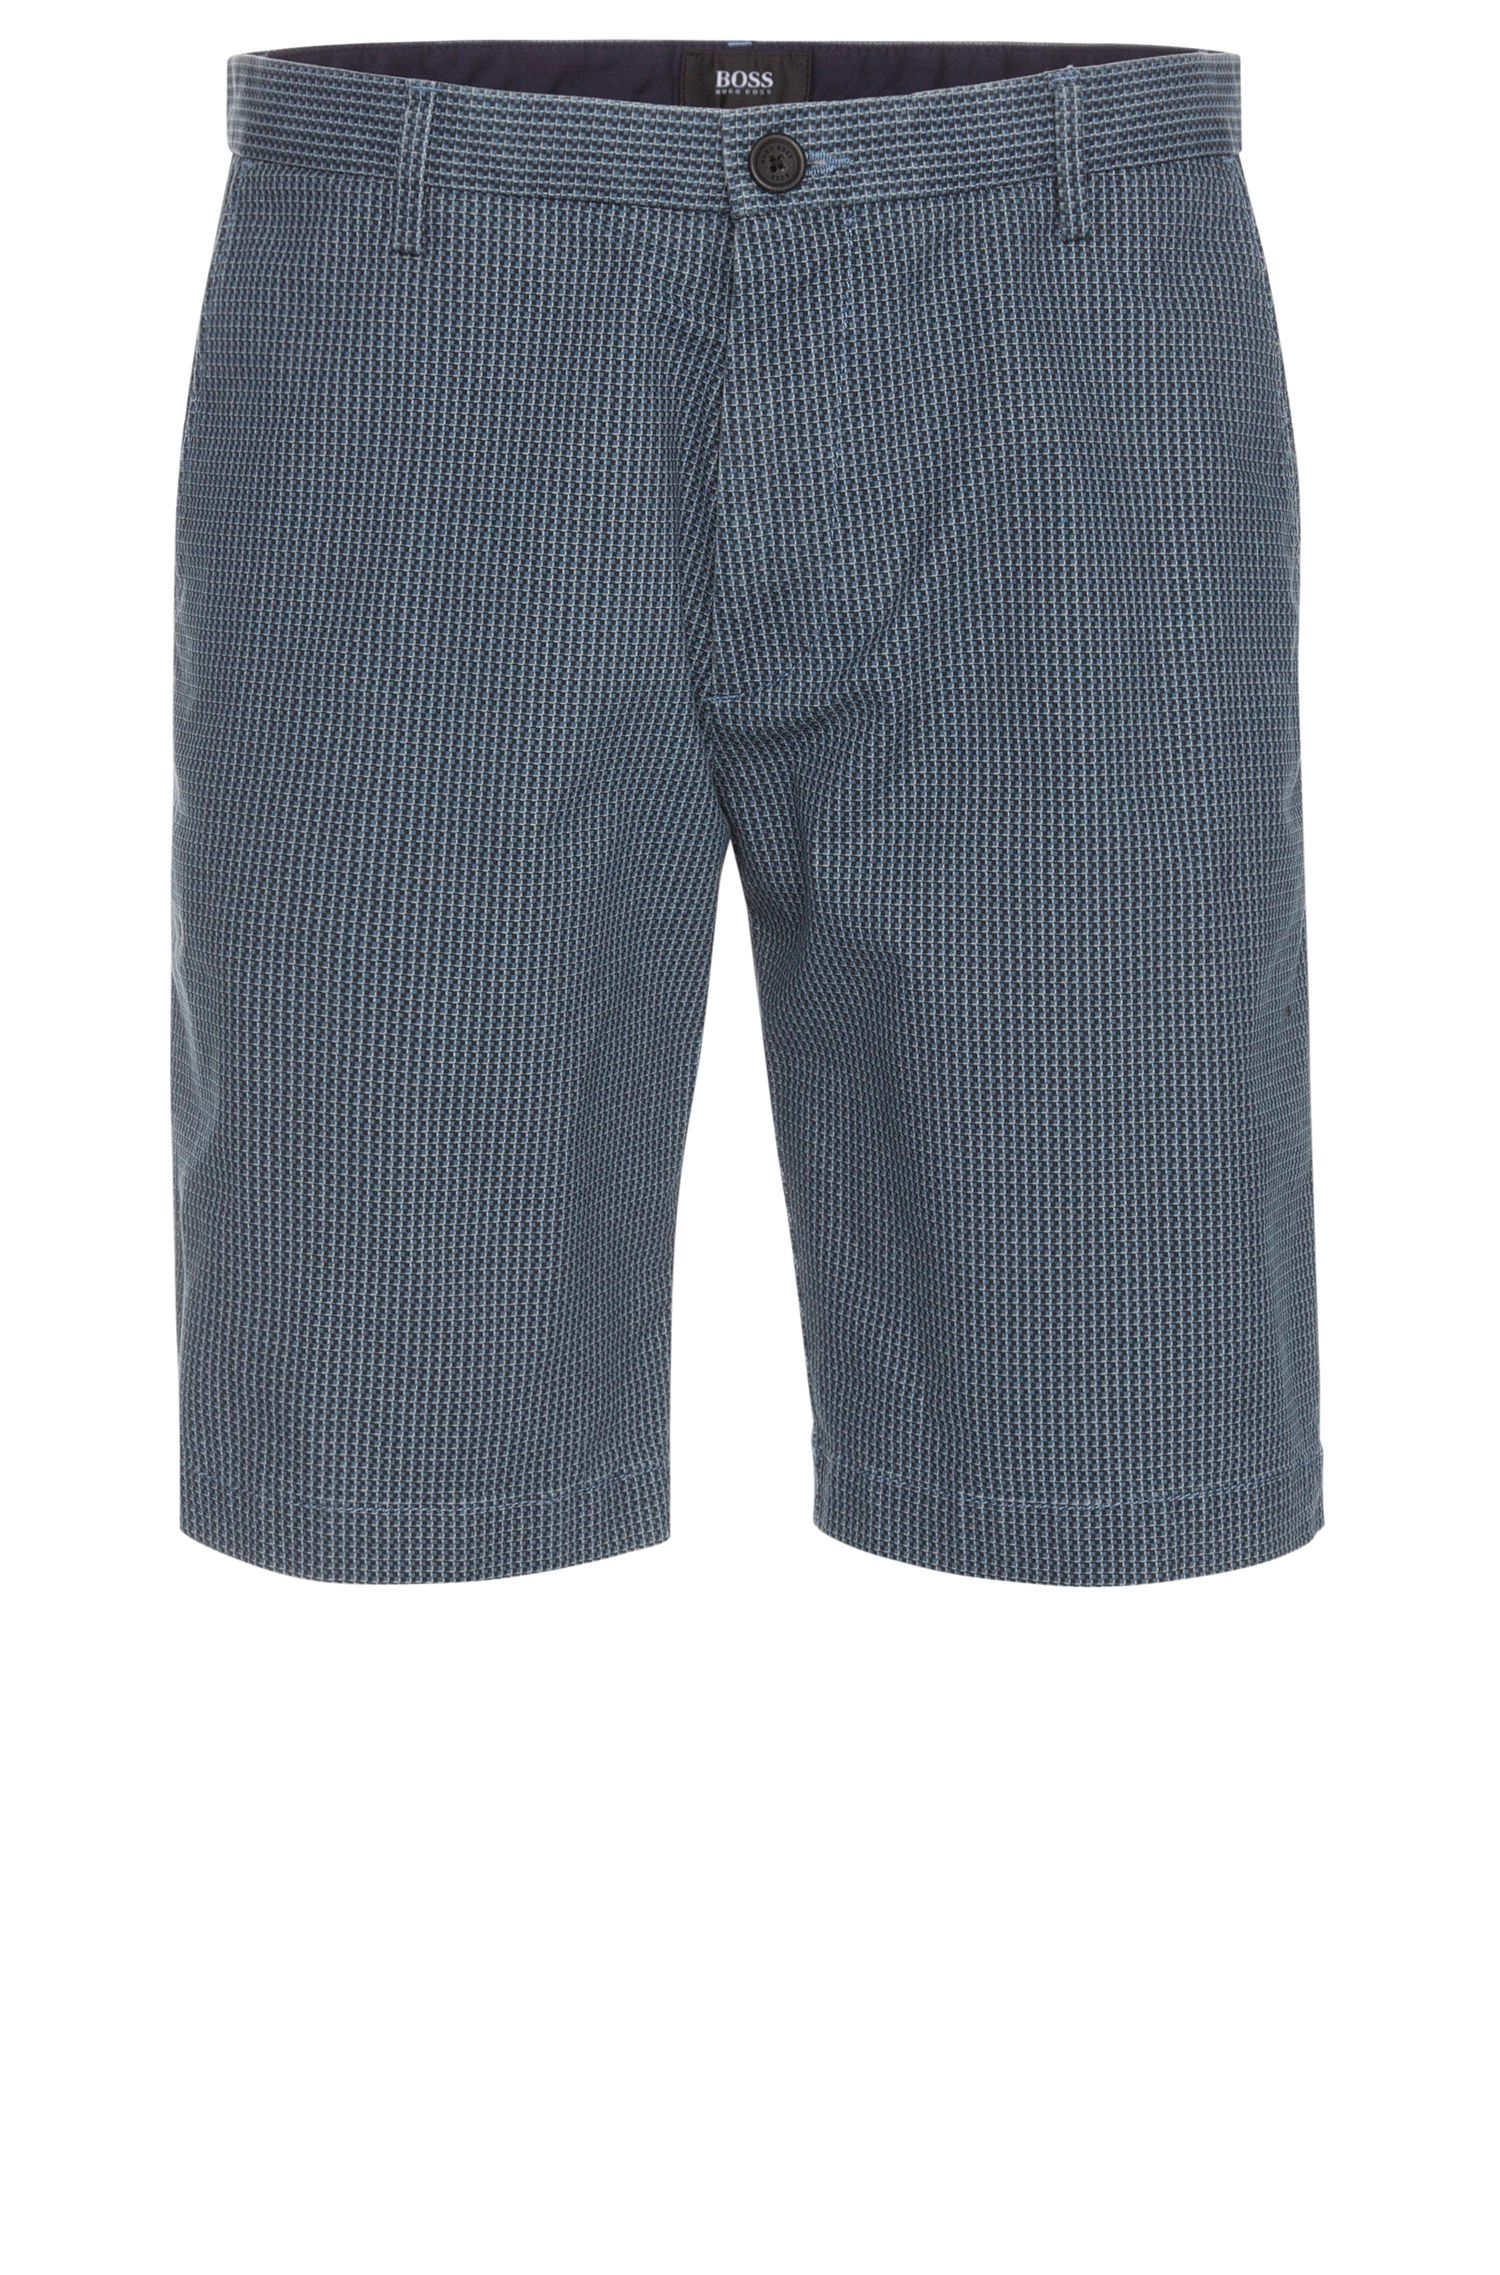 'RiceShort-W' | Slim Fit, Stretch Cotton Printed Shorts